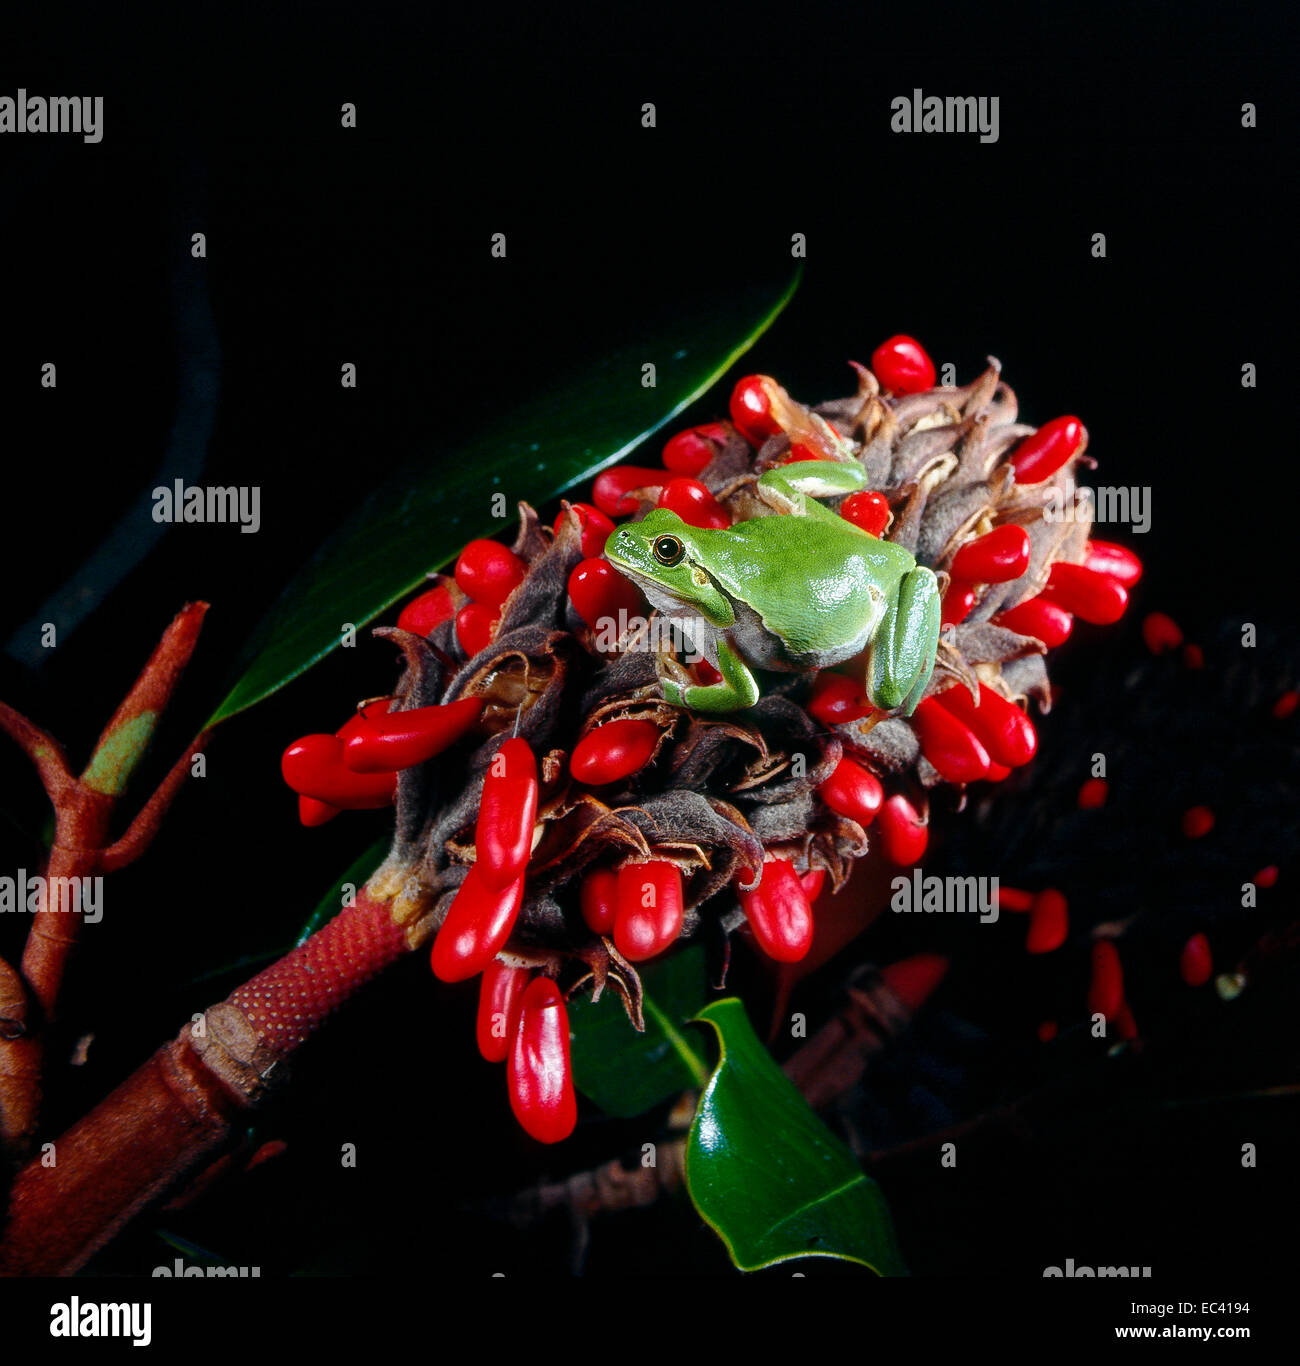 Mimicry - Italian tree frog (Hyla intermedia) on an inflorescence of magnolia with seeds - Stock Image